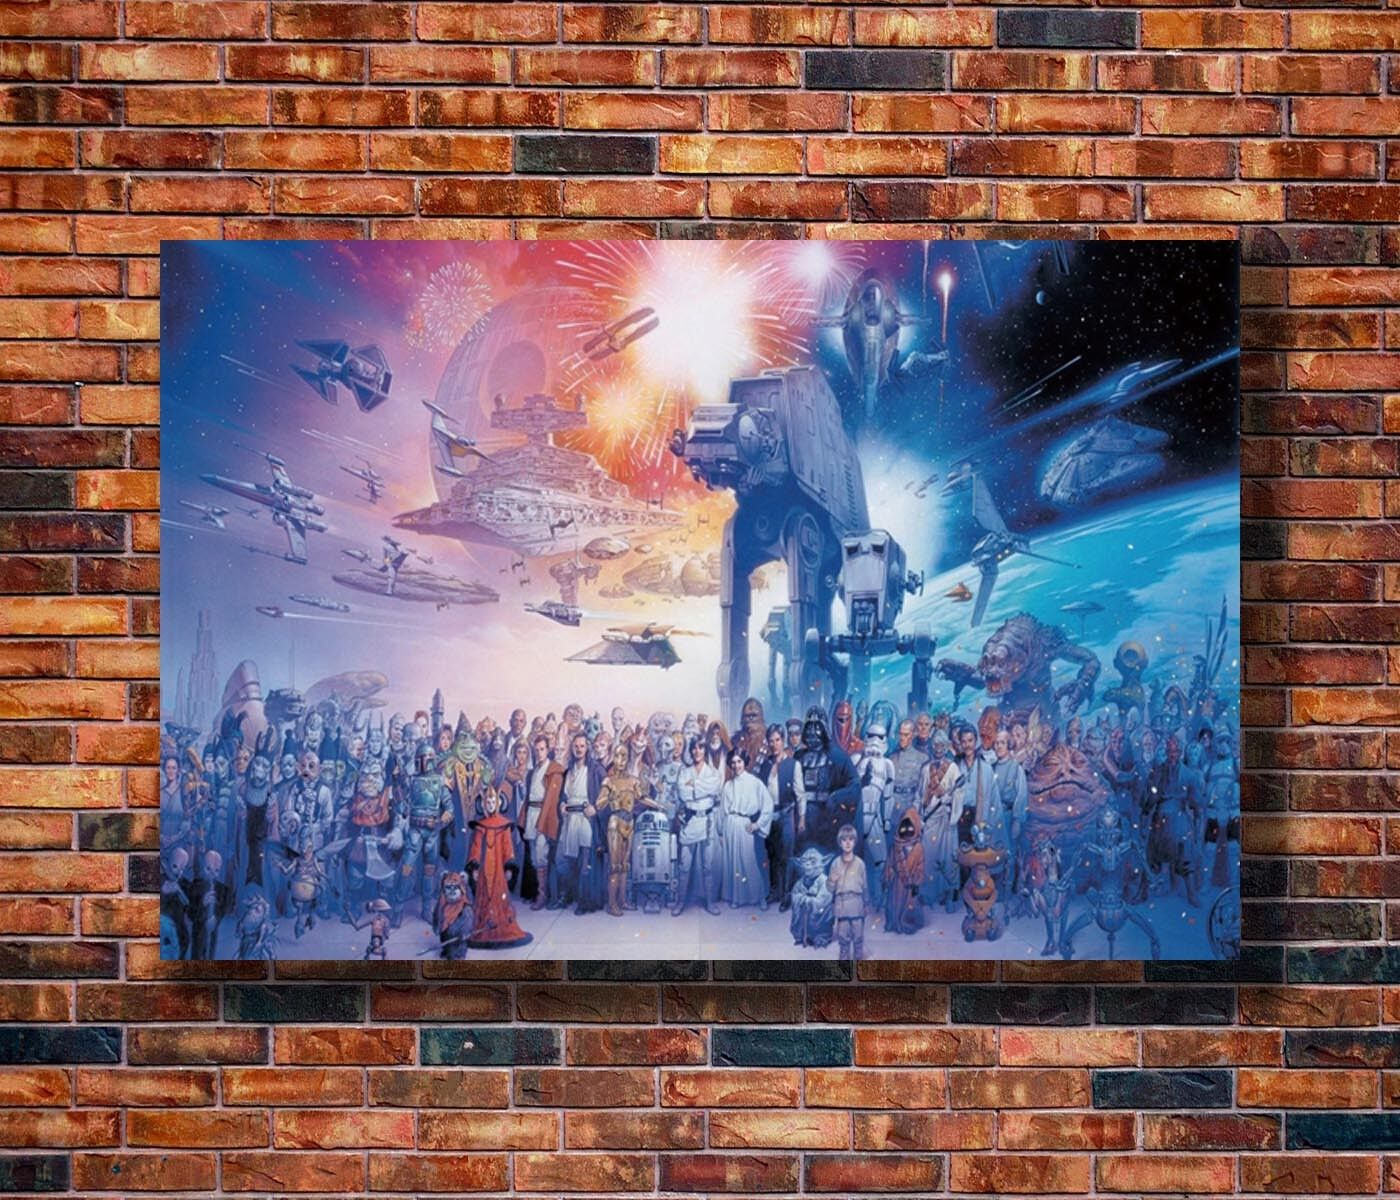 Art Star Wars Darth Vader Hot Classic Movie -20x30 24x36in Poster Hot Gift C2659